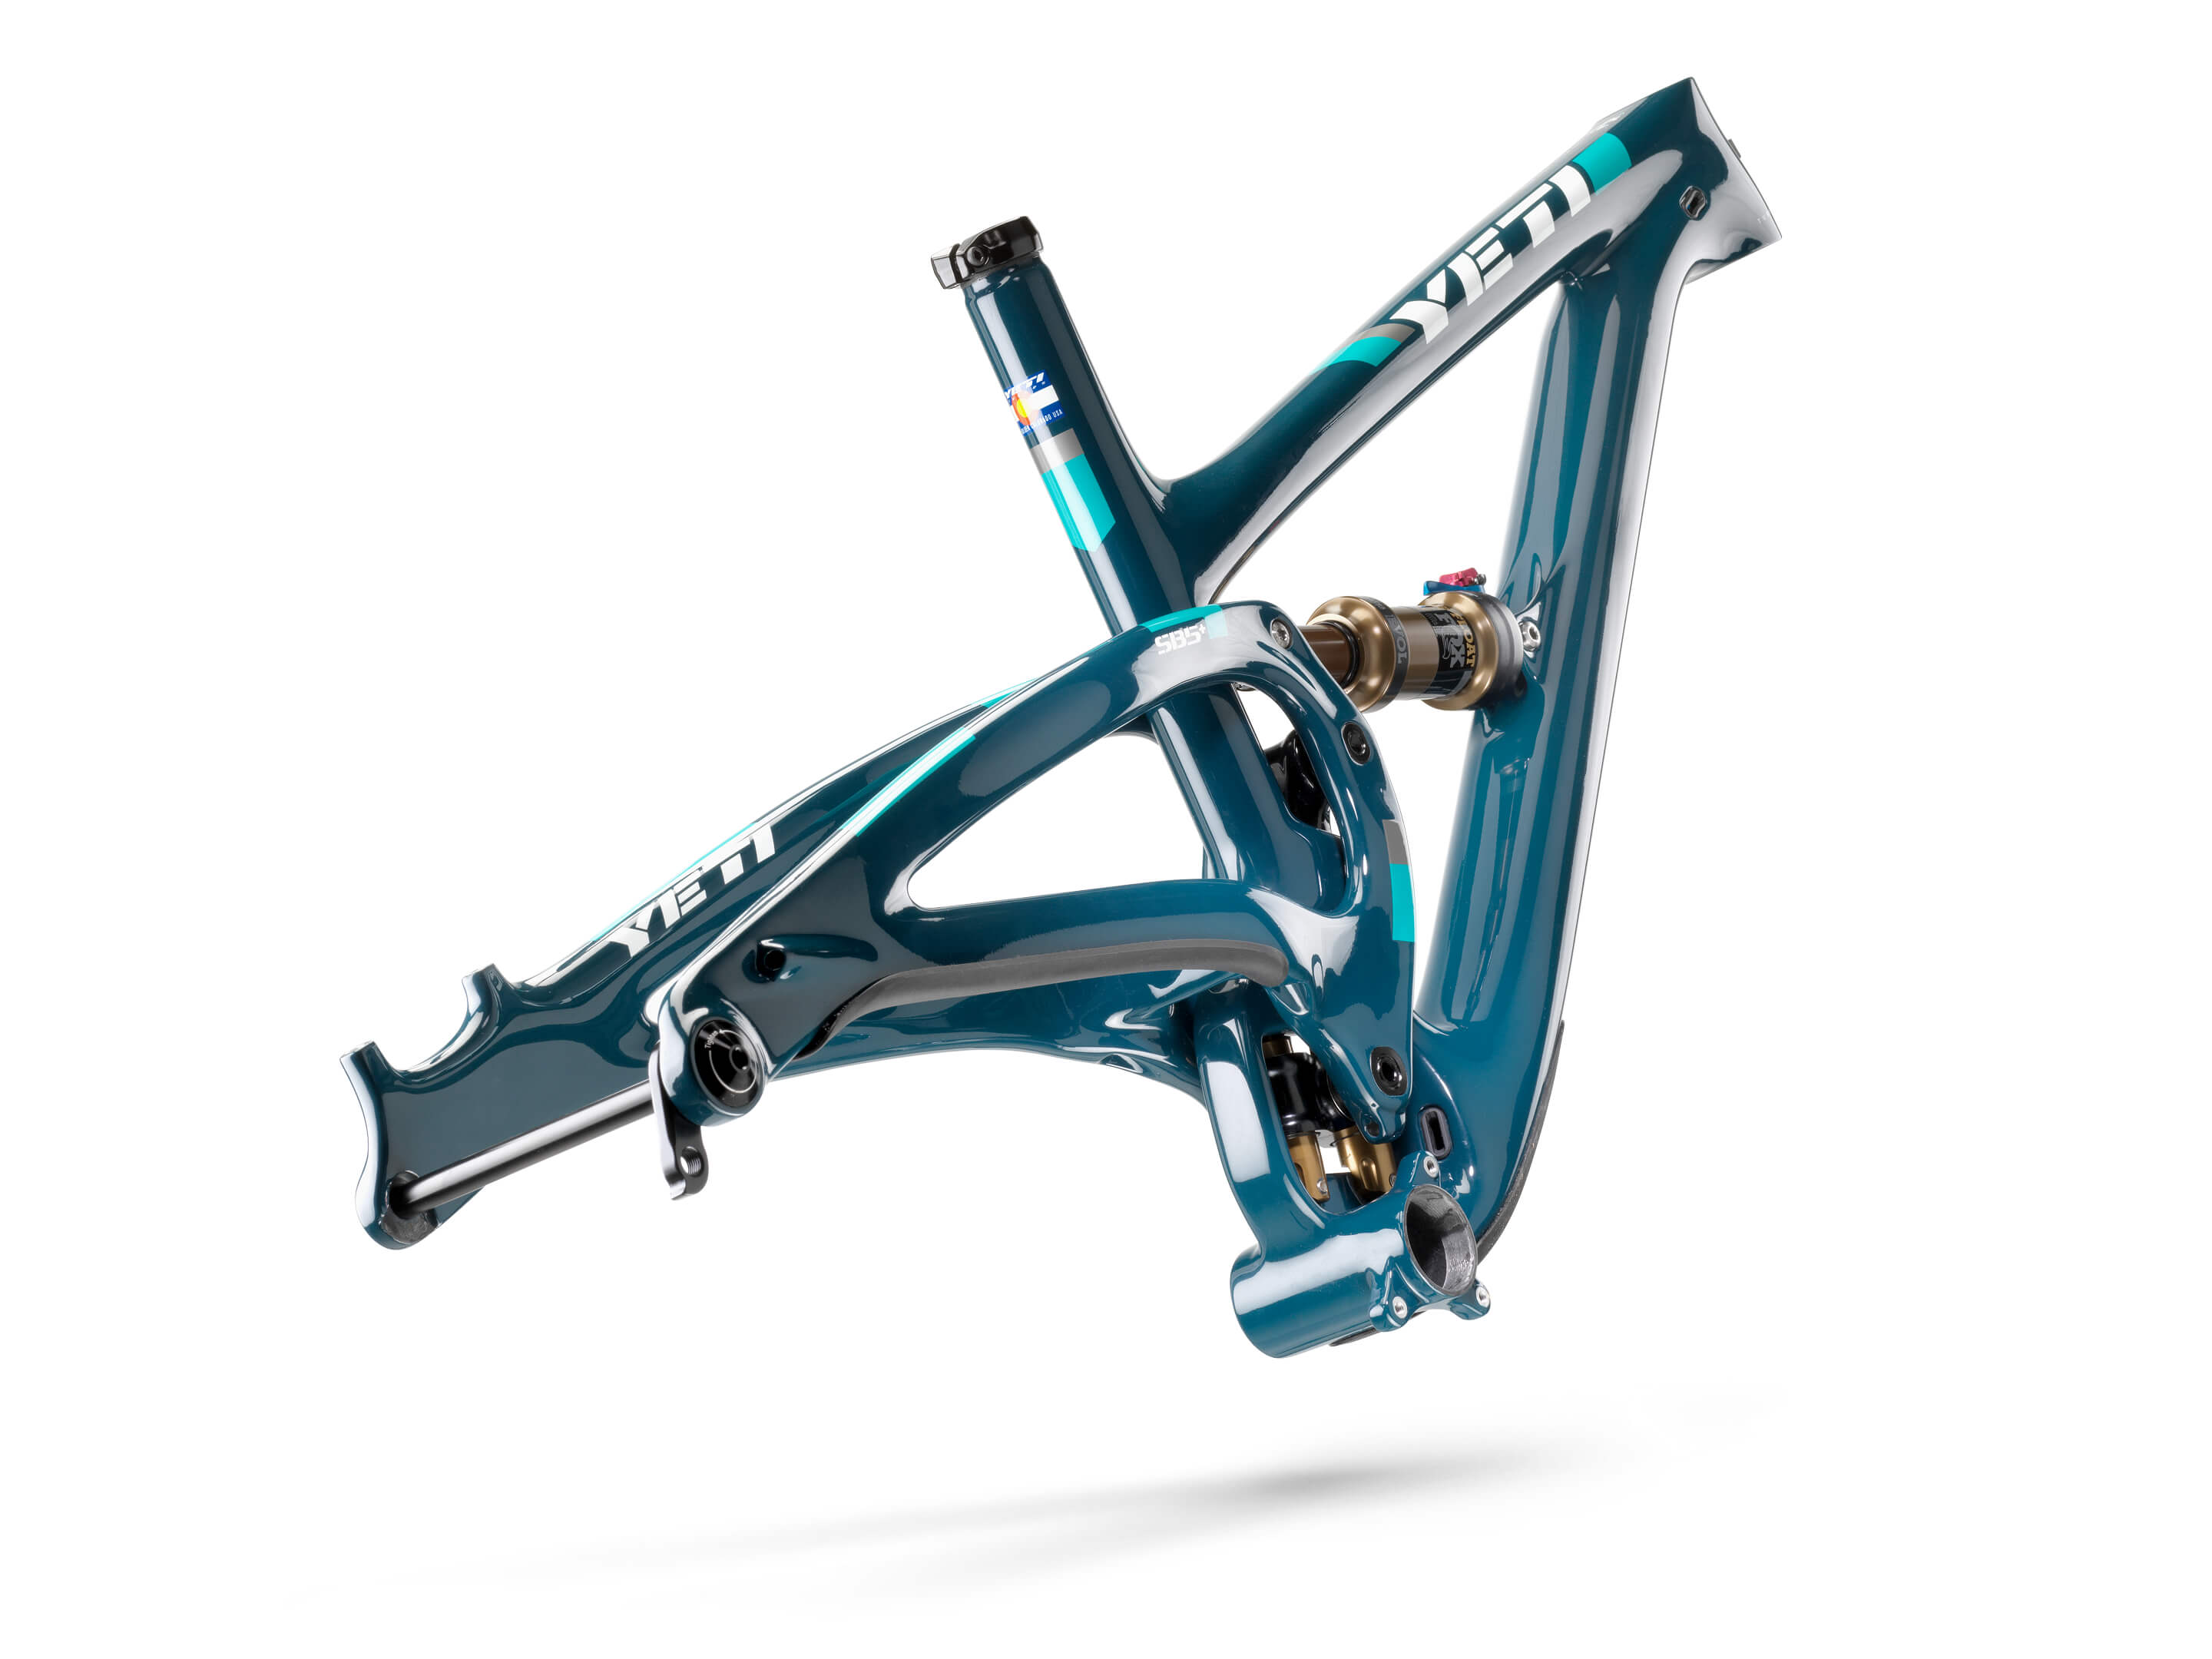 2018_YetiCycles_Frame_SB5_Plus_TS_Storm_03